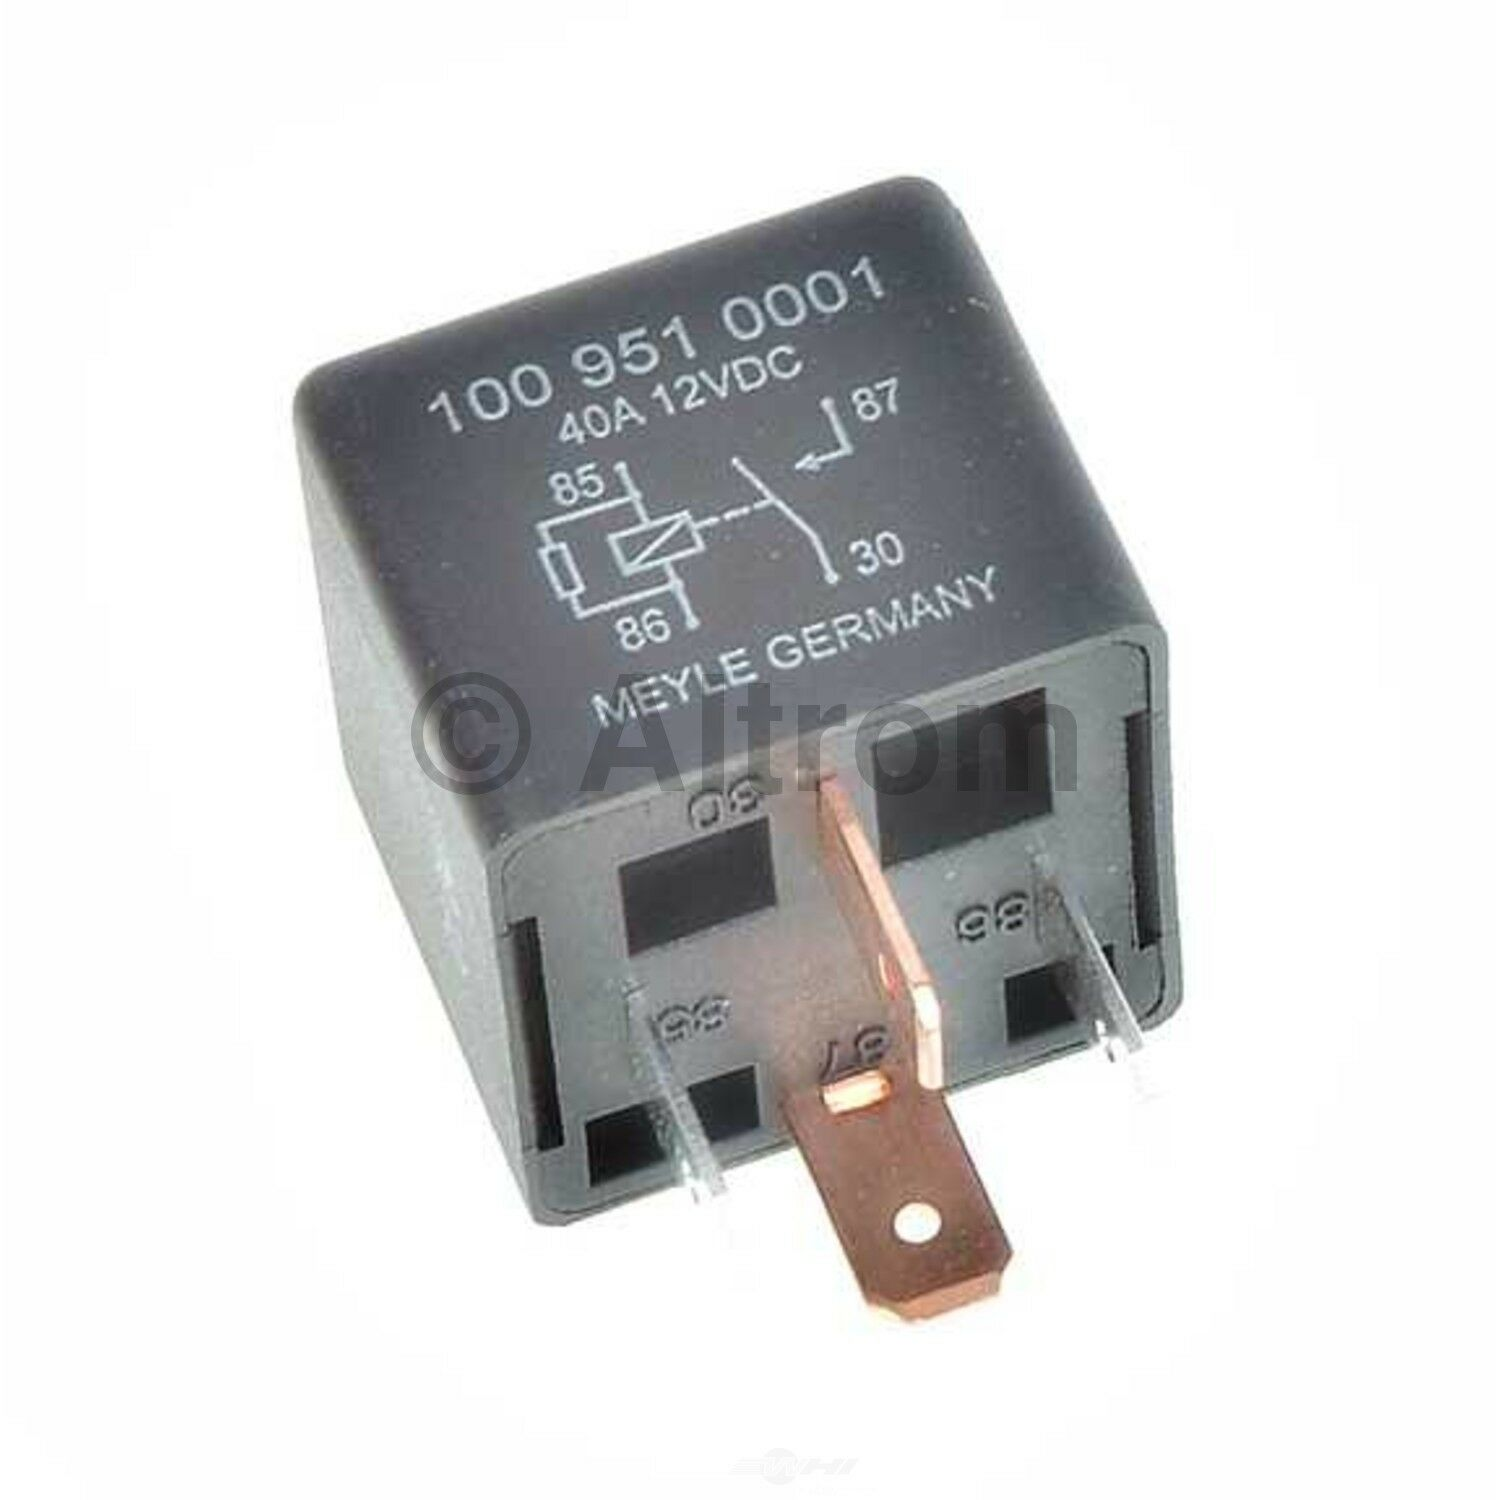 napa 5 prong relay wiring diagram trusted wiring diagrams for a 5 blade relay wiring to starter ar272 relay diagram trusted wiring diagrams \\u2022 5 pin relay pinout napa 5 prong relay wiring diagram